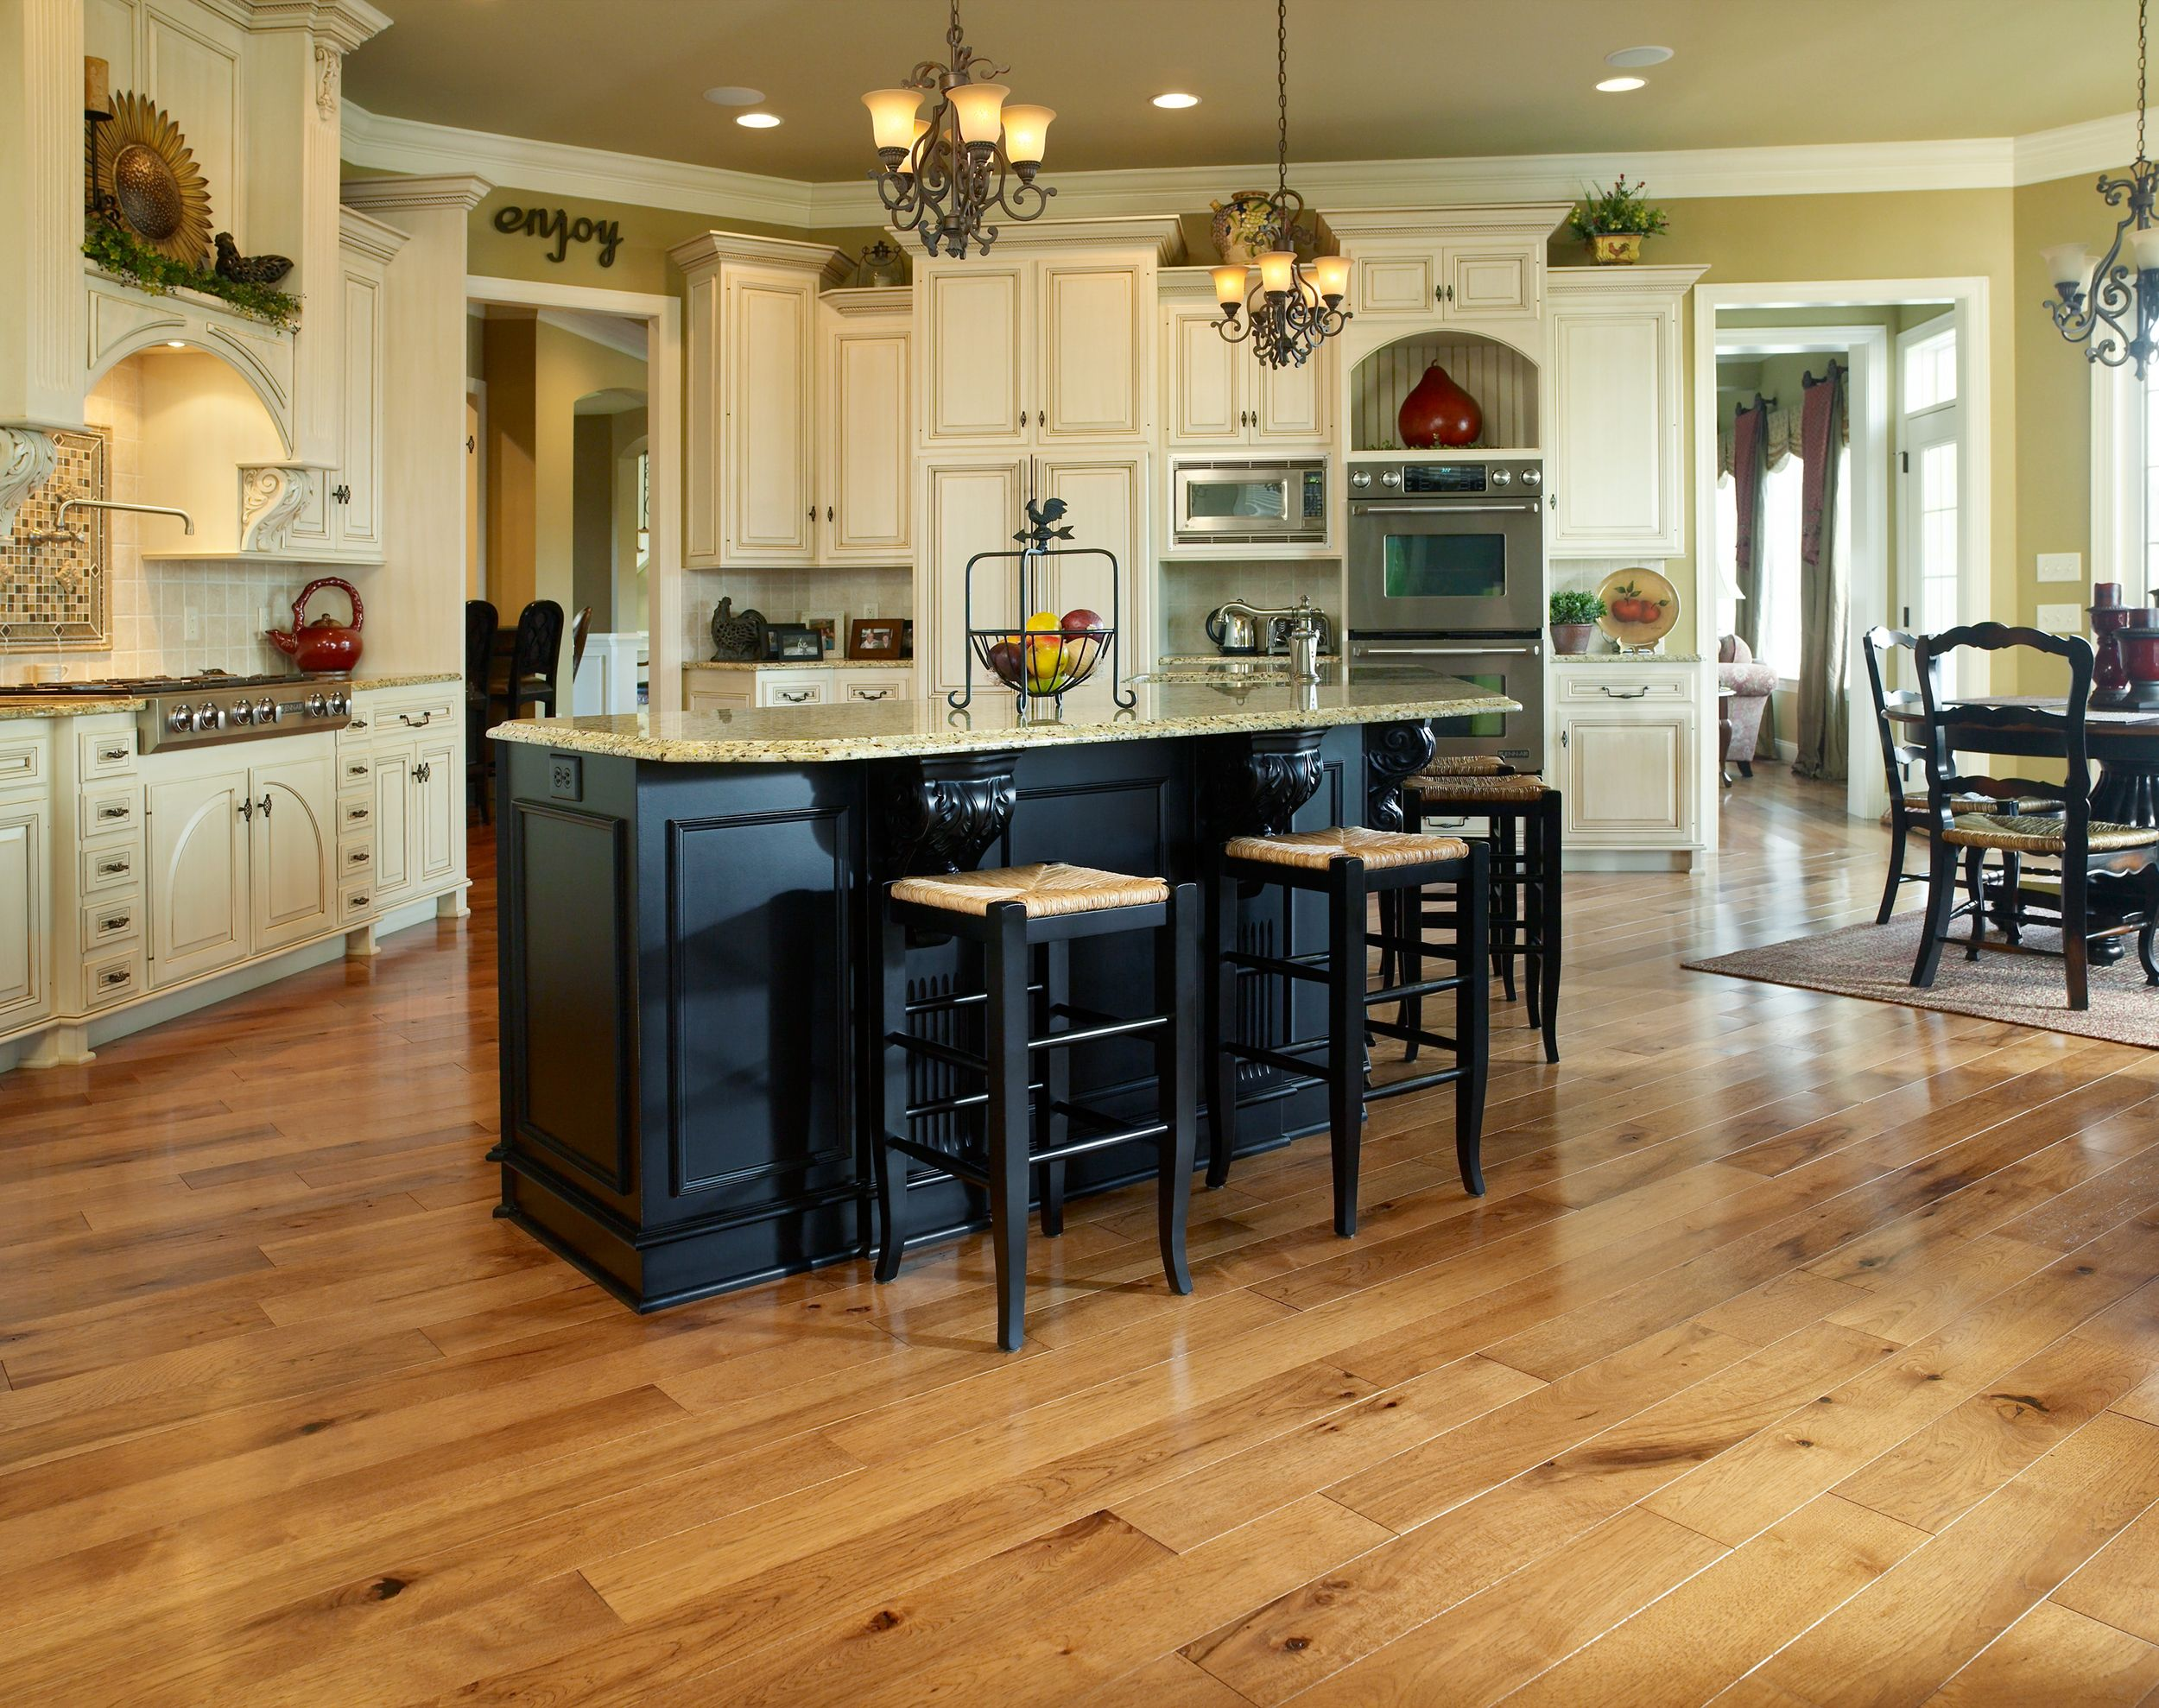 Wood Floors For Kitchen Plan Hickory Hardwood Flooring Bellawood And Hickory Hardwood